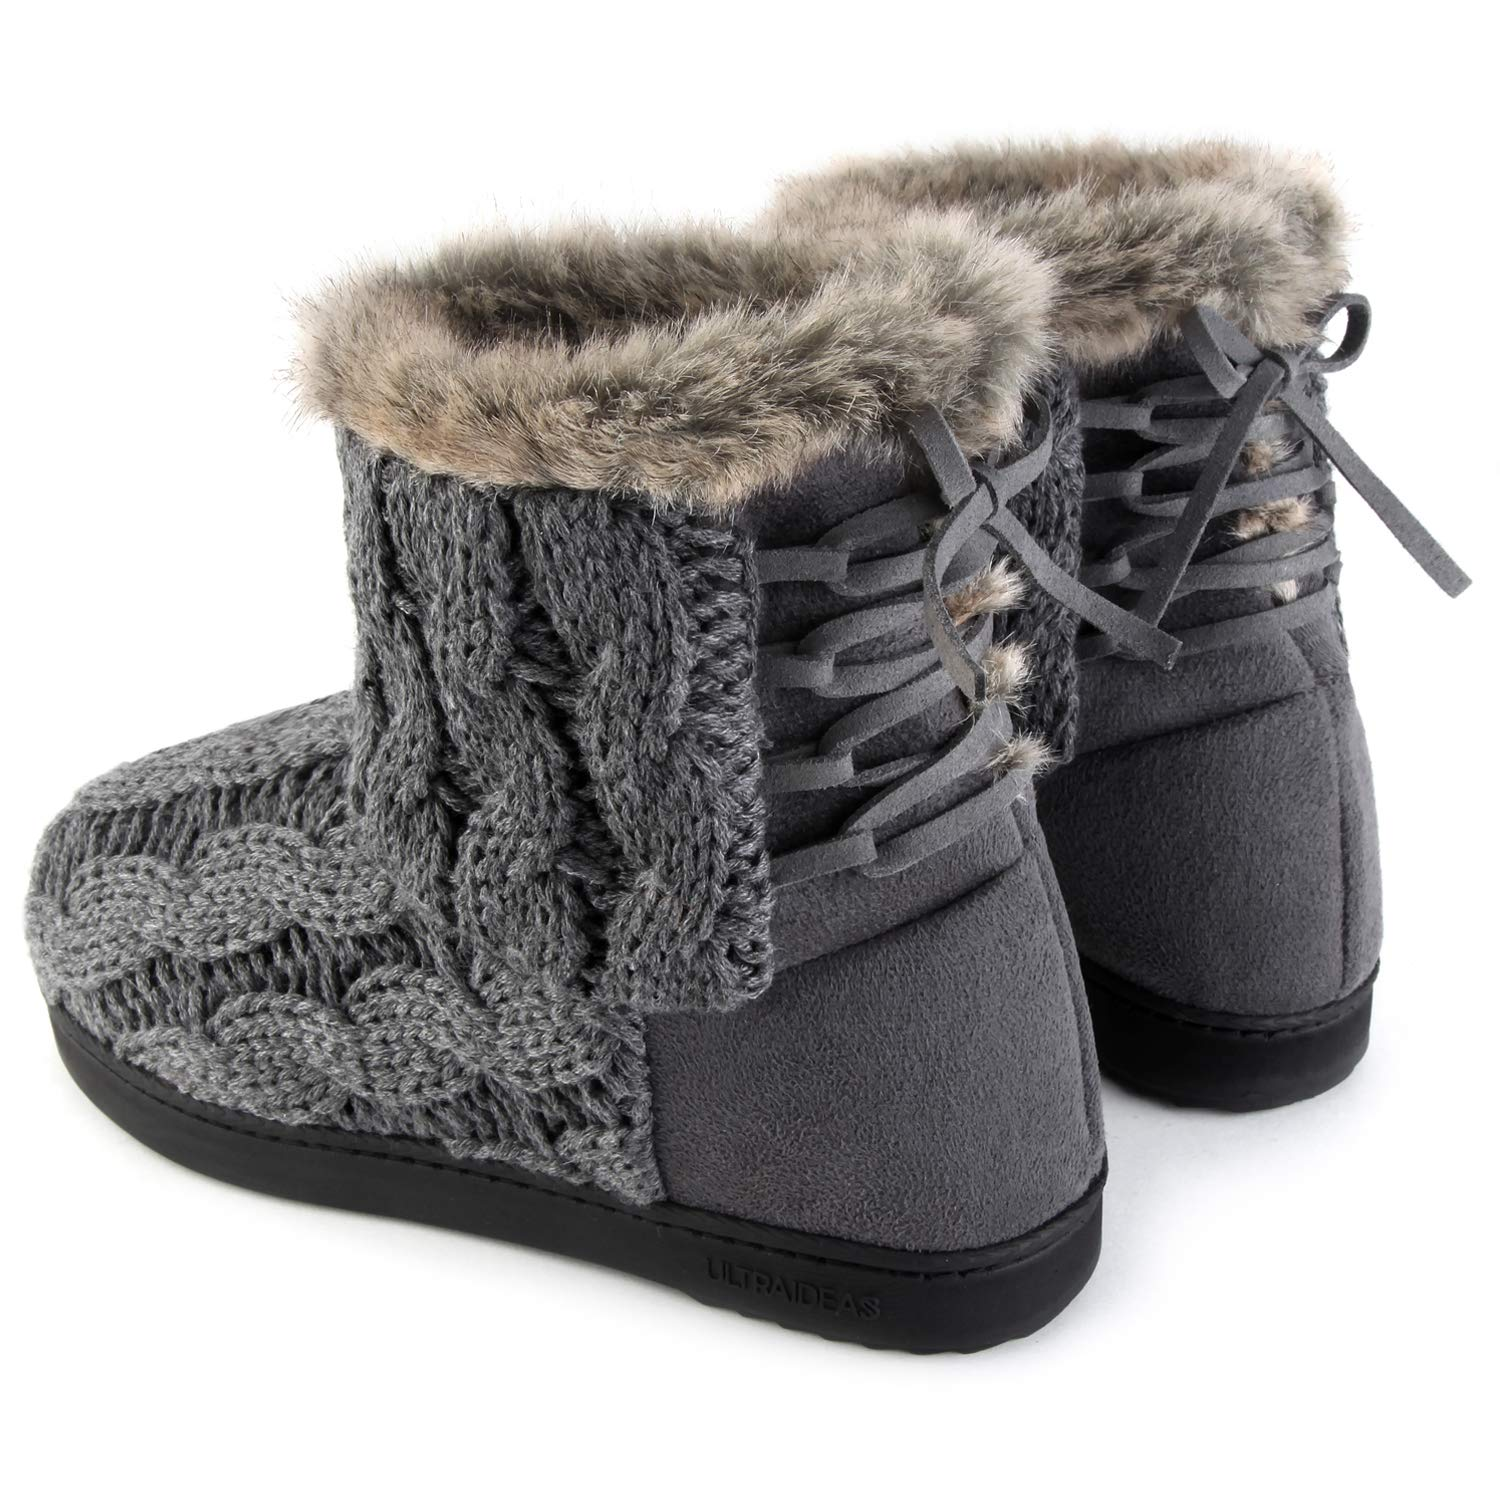 e7852eeef Shoes ULTRAIDEAS Womens Soft Yarn Cable Knit Bootie Slippers Memory Foam  Indoor & Outdoor Shoes ...